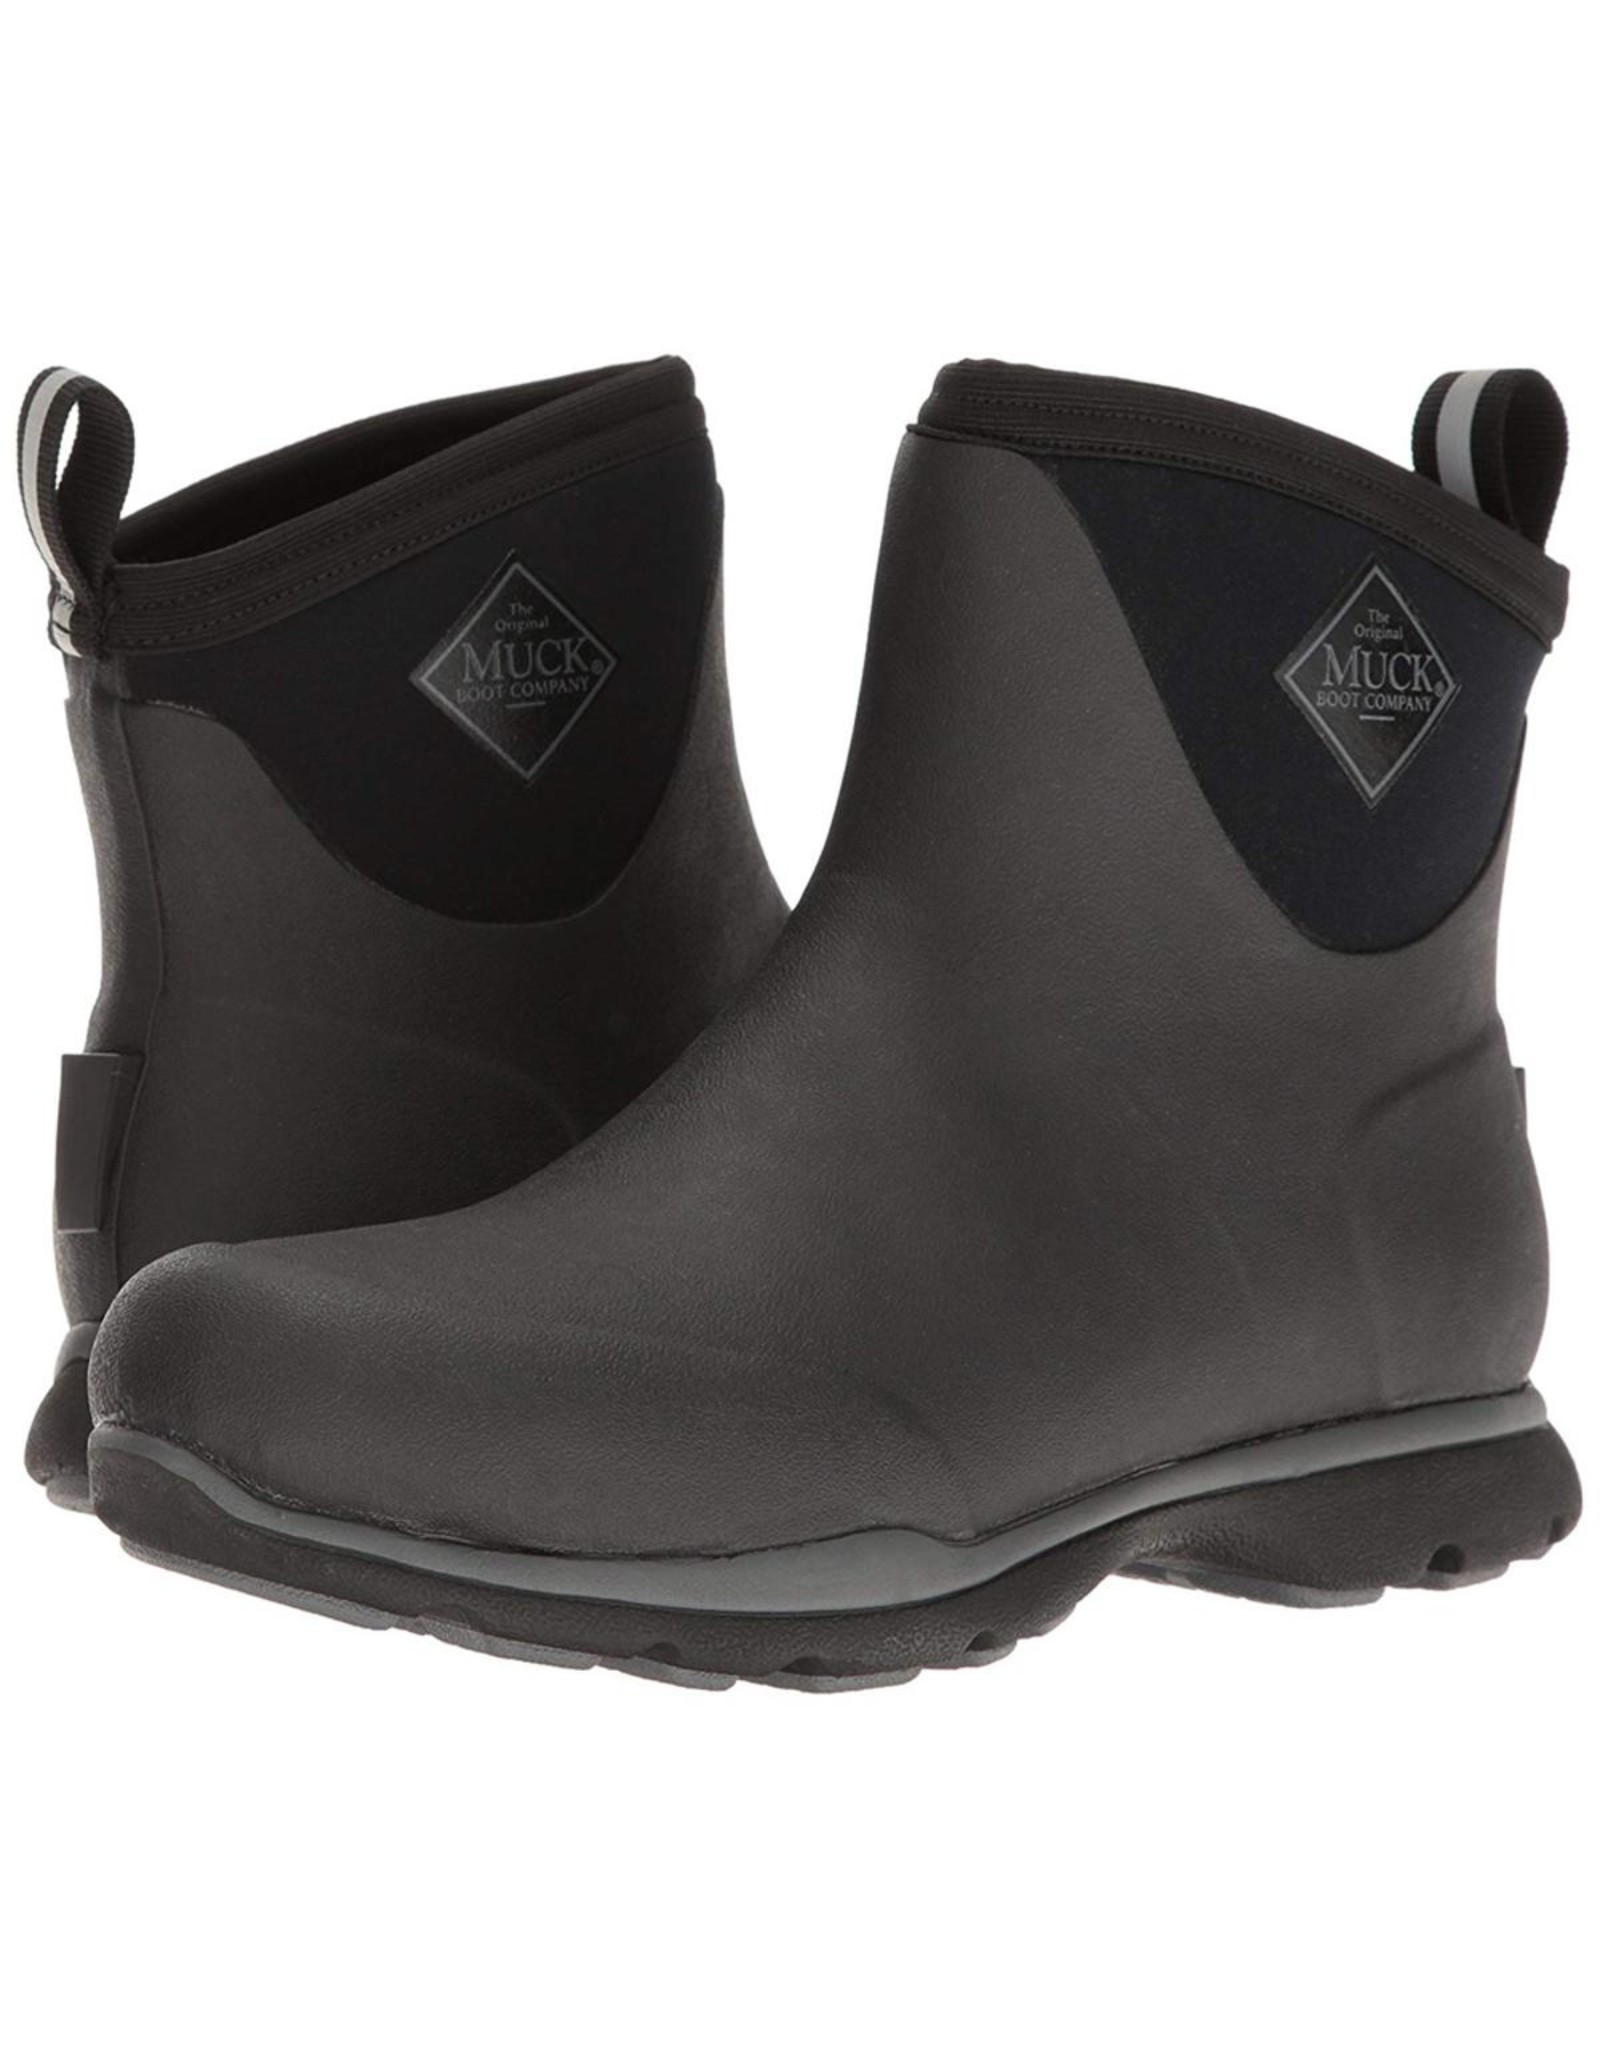 MUCK BOOT COMPANY MEN'S ARCTIC EXCURSION ANKLE BOOT